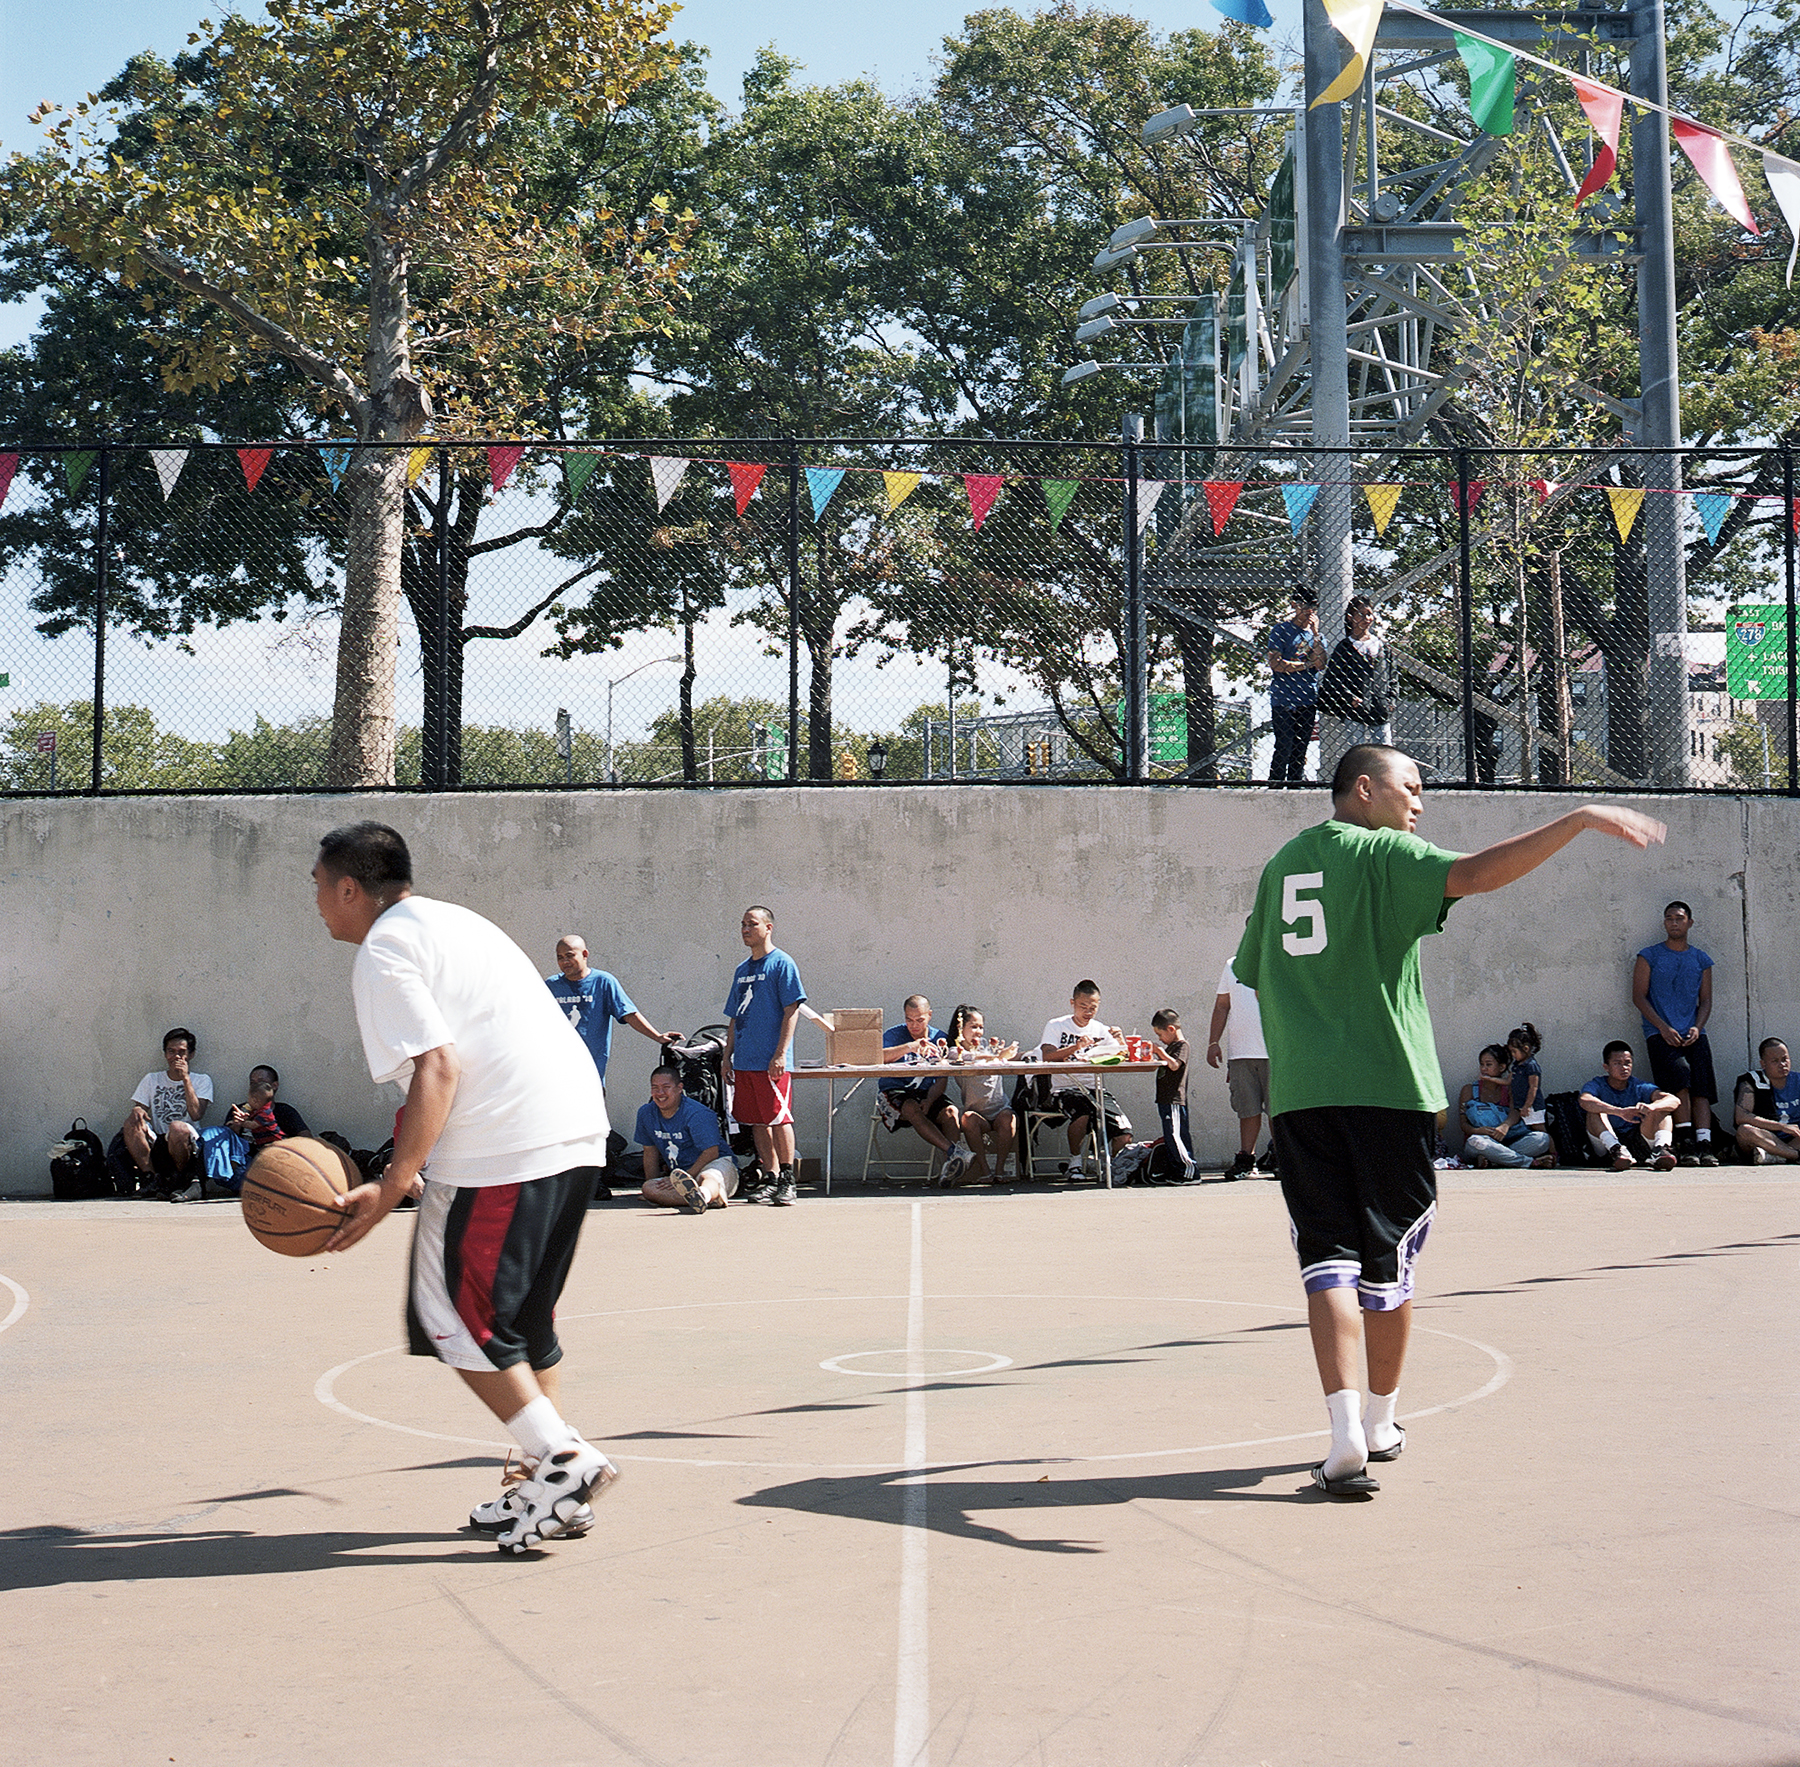 3-0n-3 Basketball Tournament, 2009